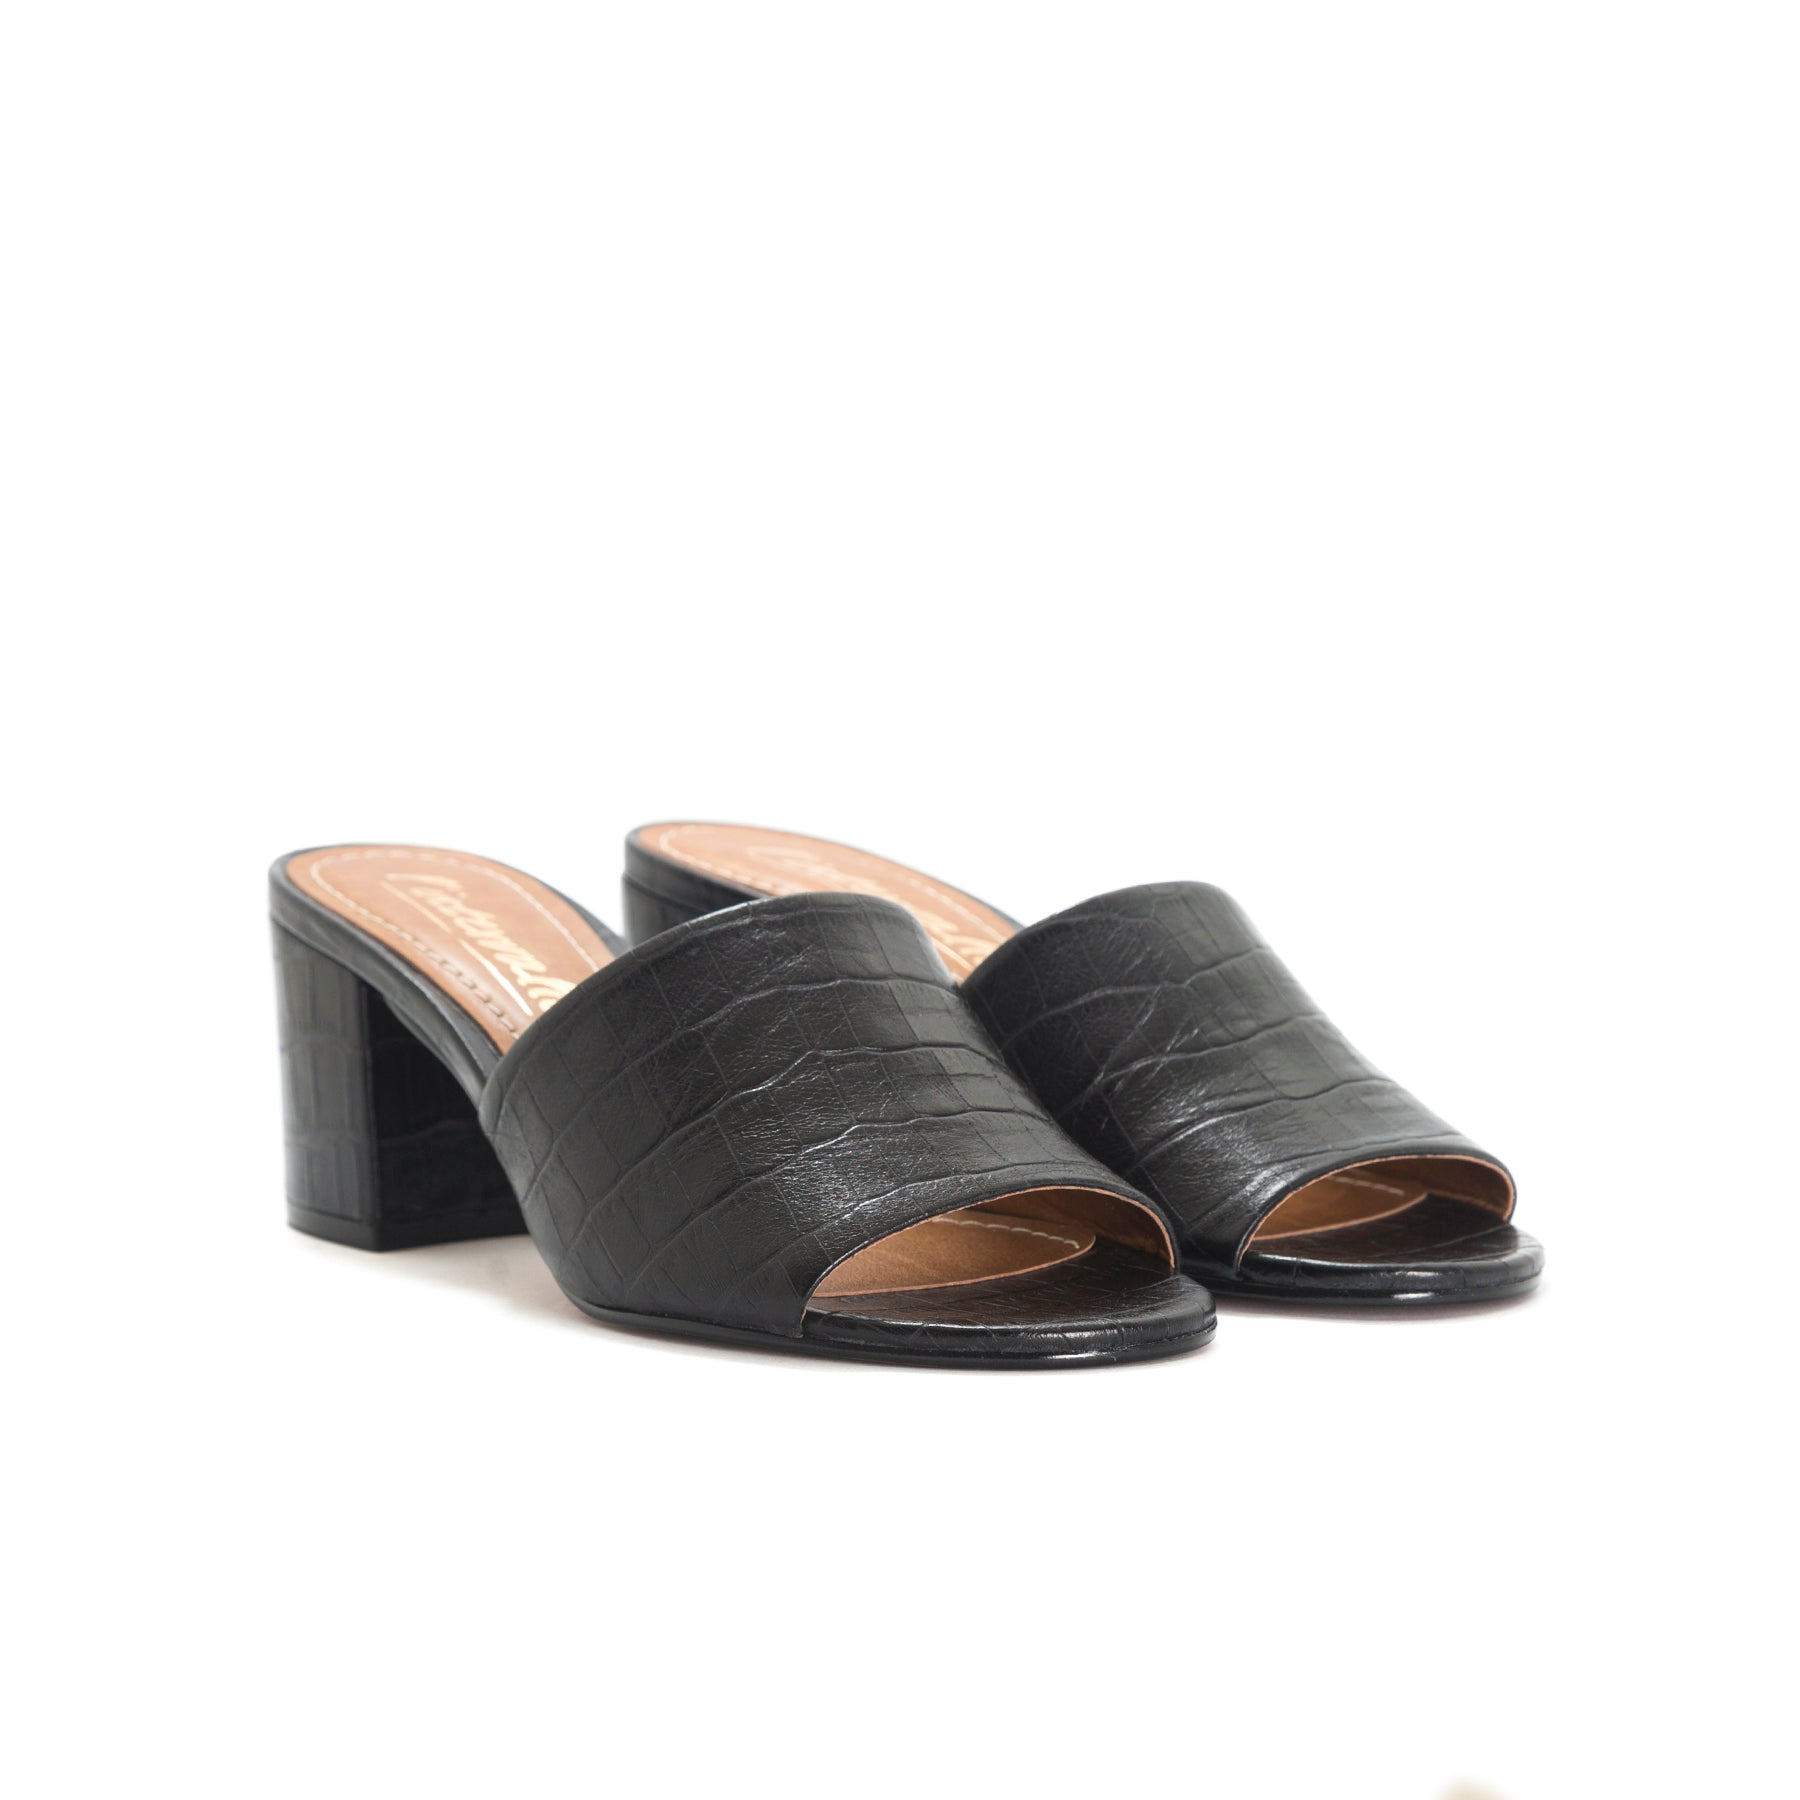 Dina Black Croco Mules